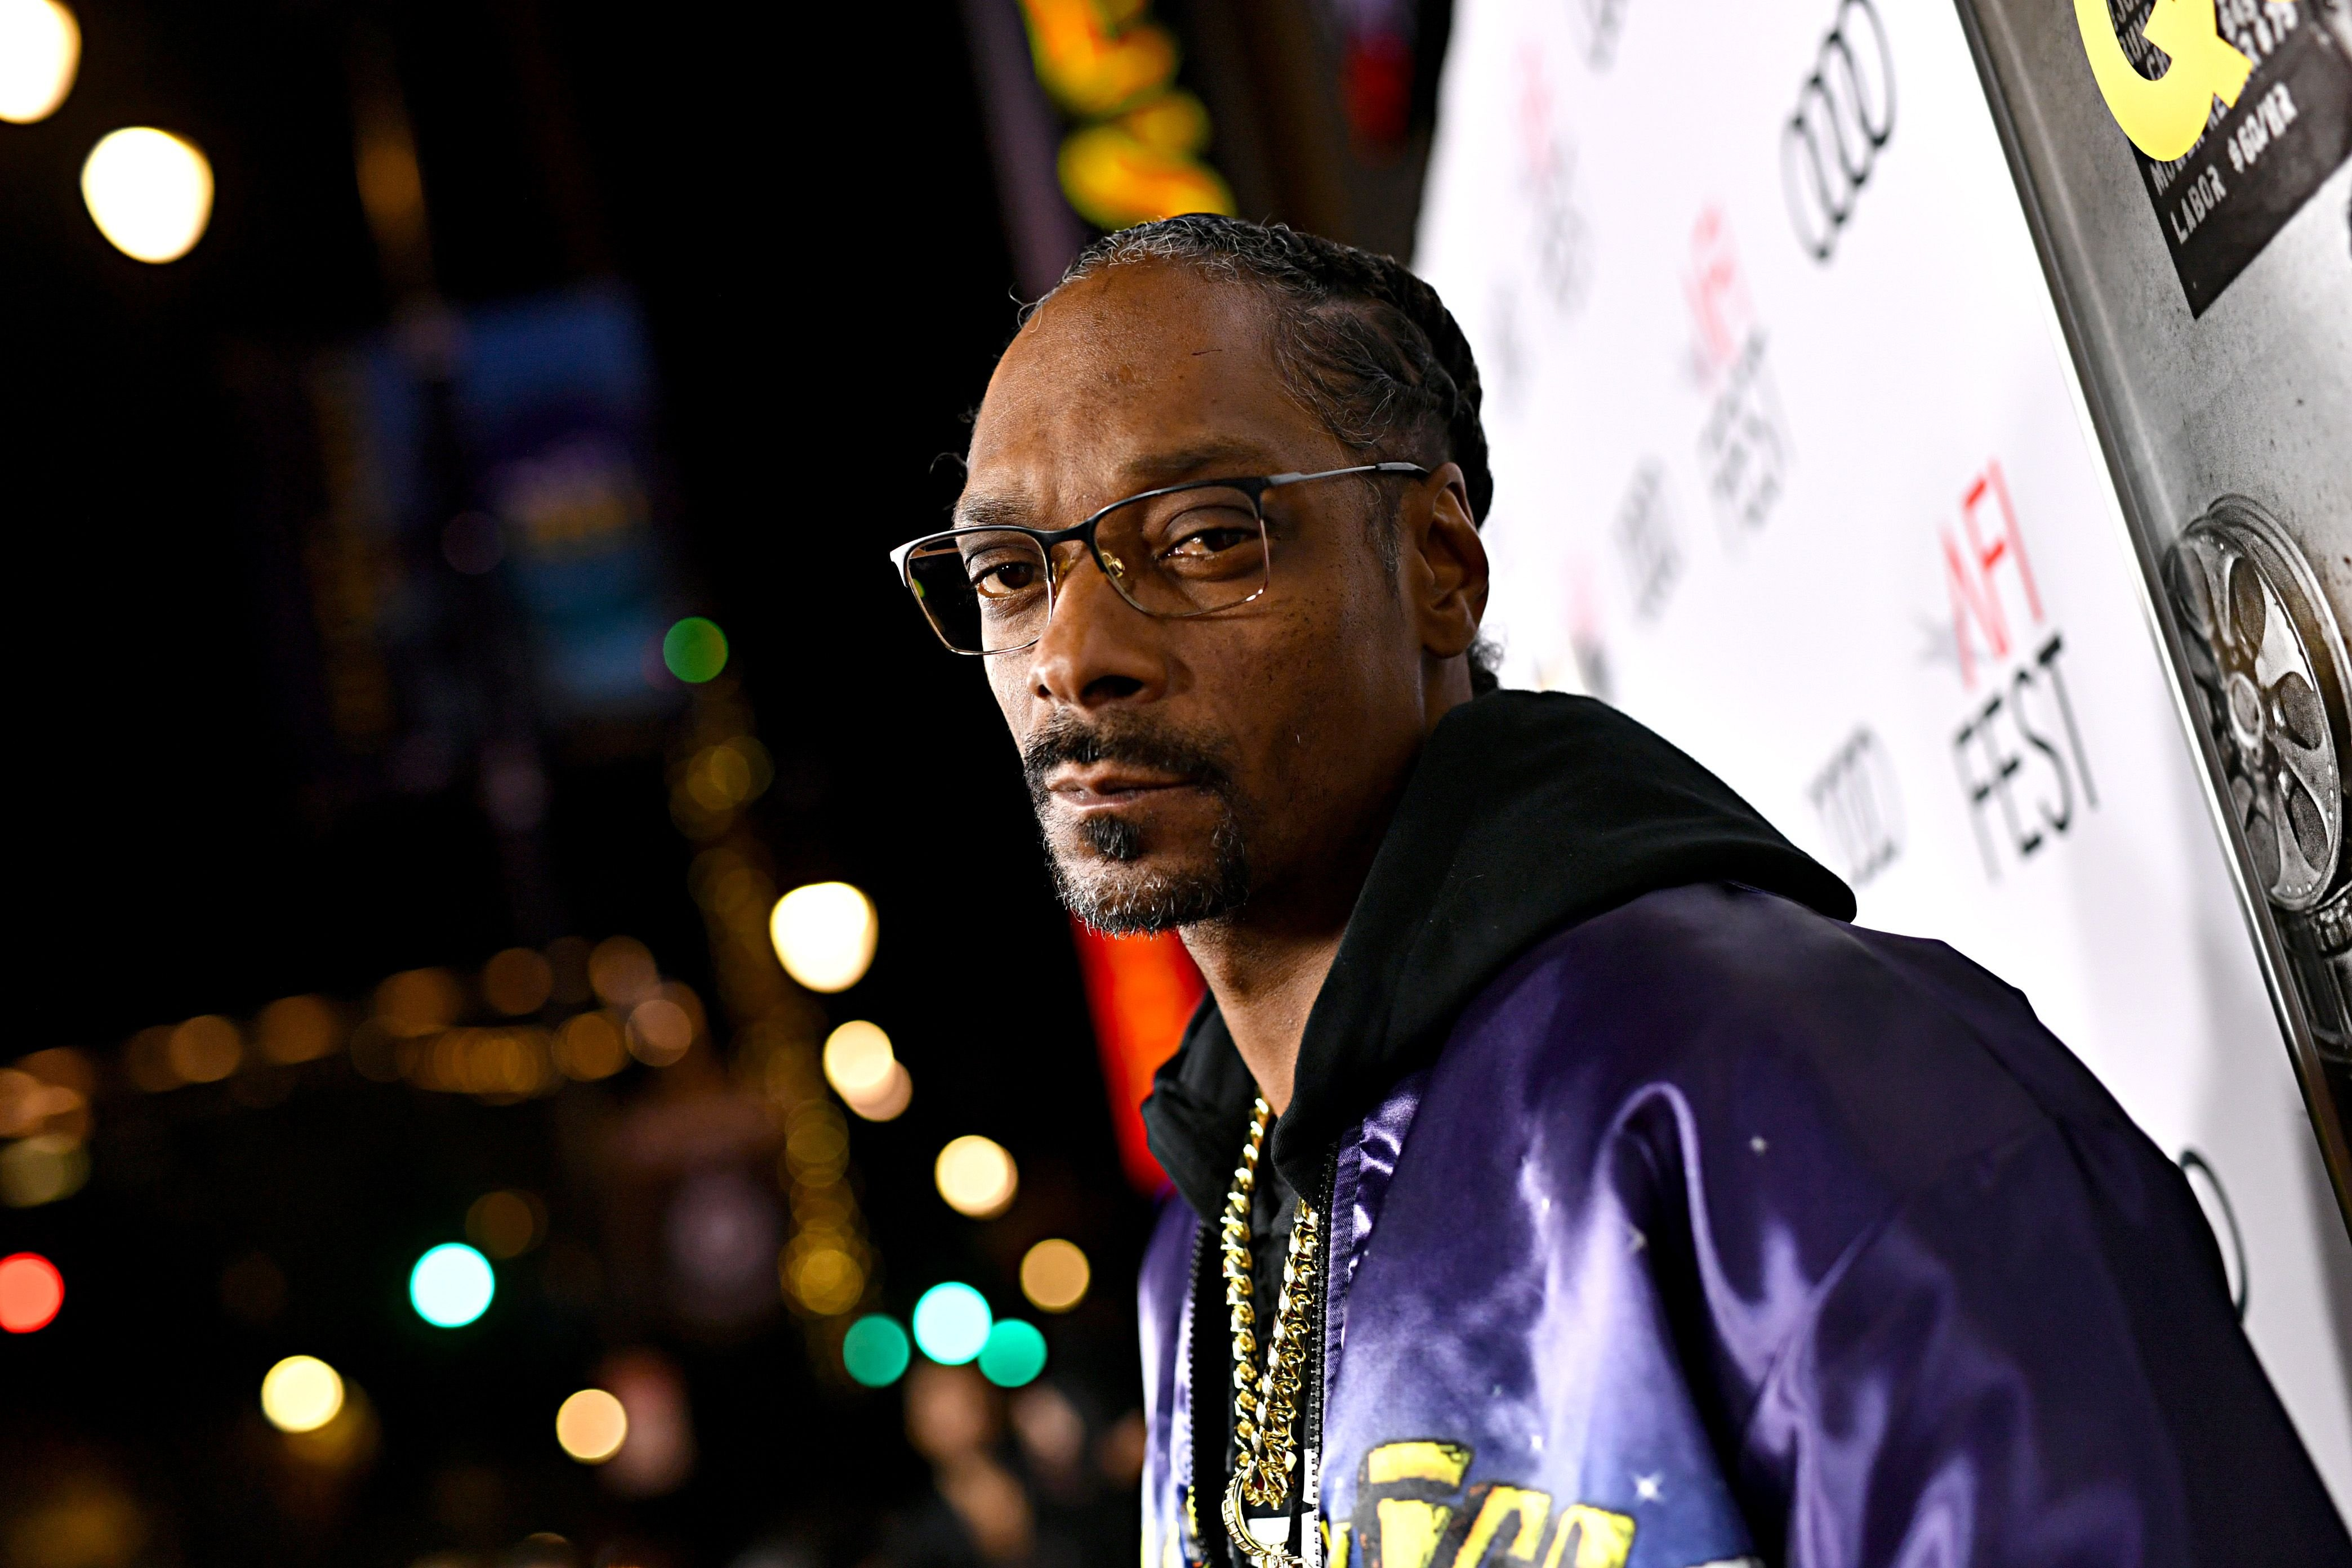 """Rapper Snoop Dogg at the """"Queen & Slim"""" premiere on November 14, 2019 in Hollywood.   Photo: Getty Images"""